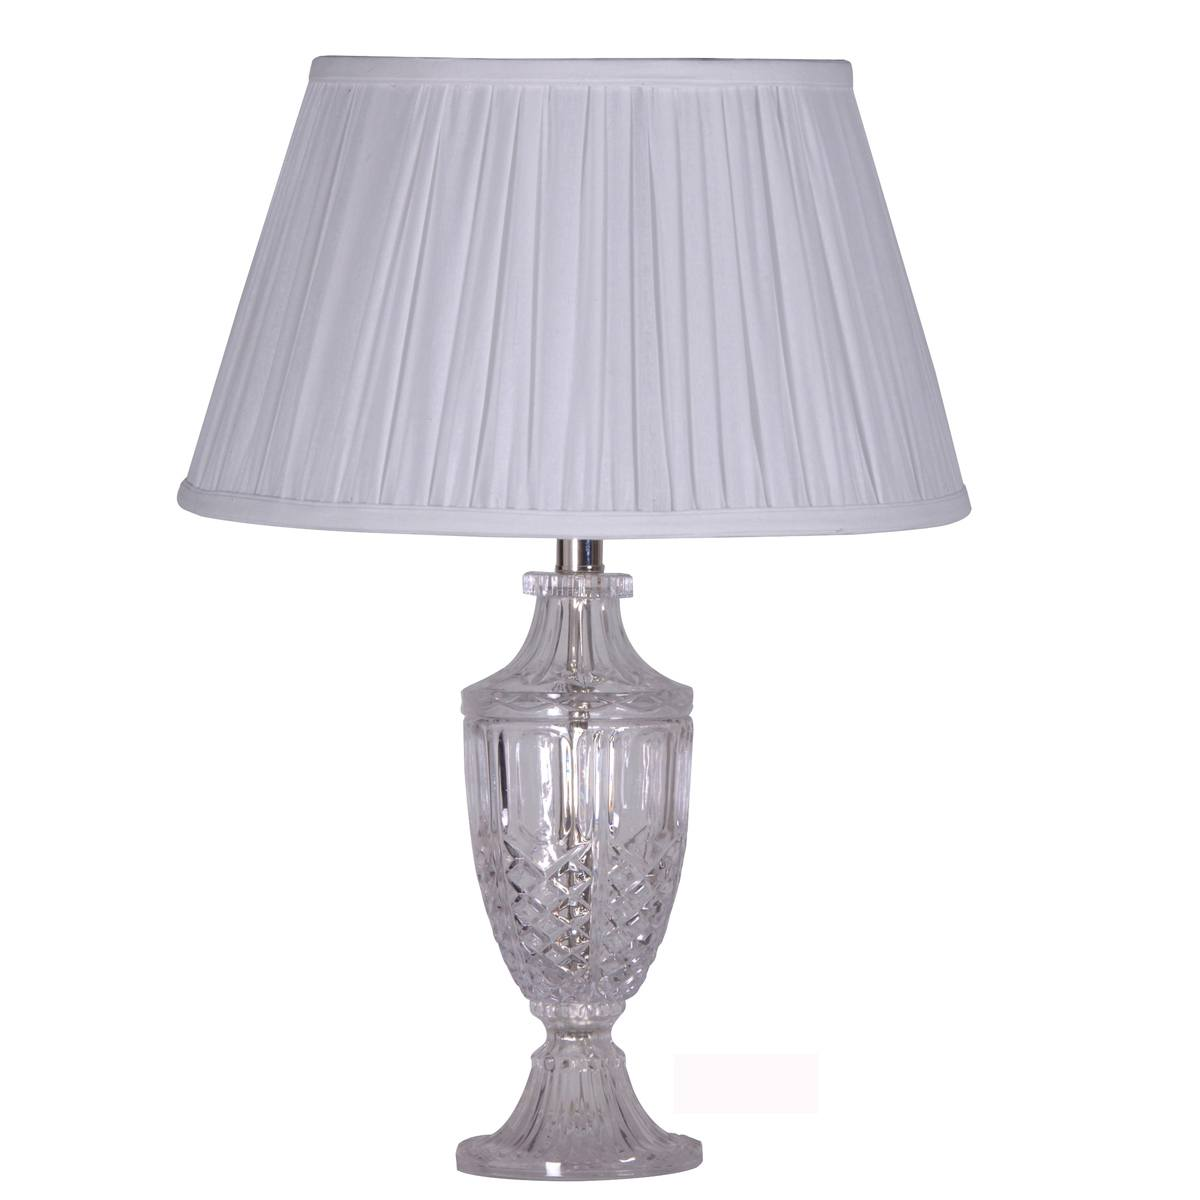 Daphne Cut Glass Elegant Table Lamp, French Bedroom Company